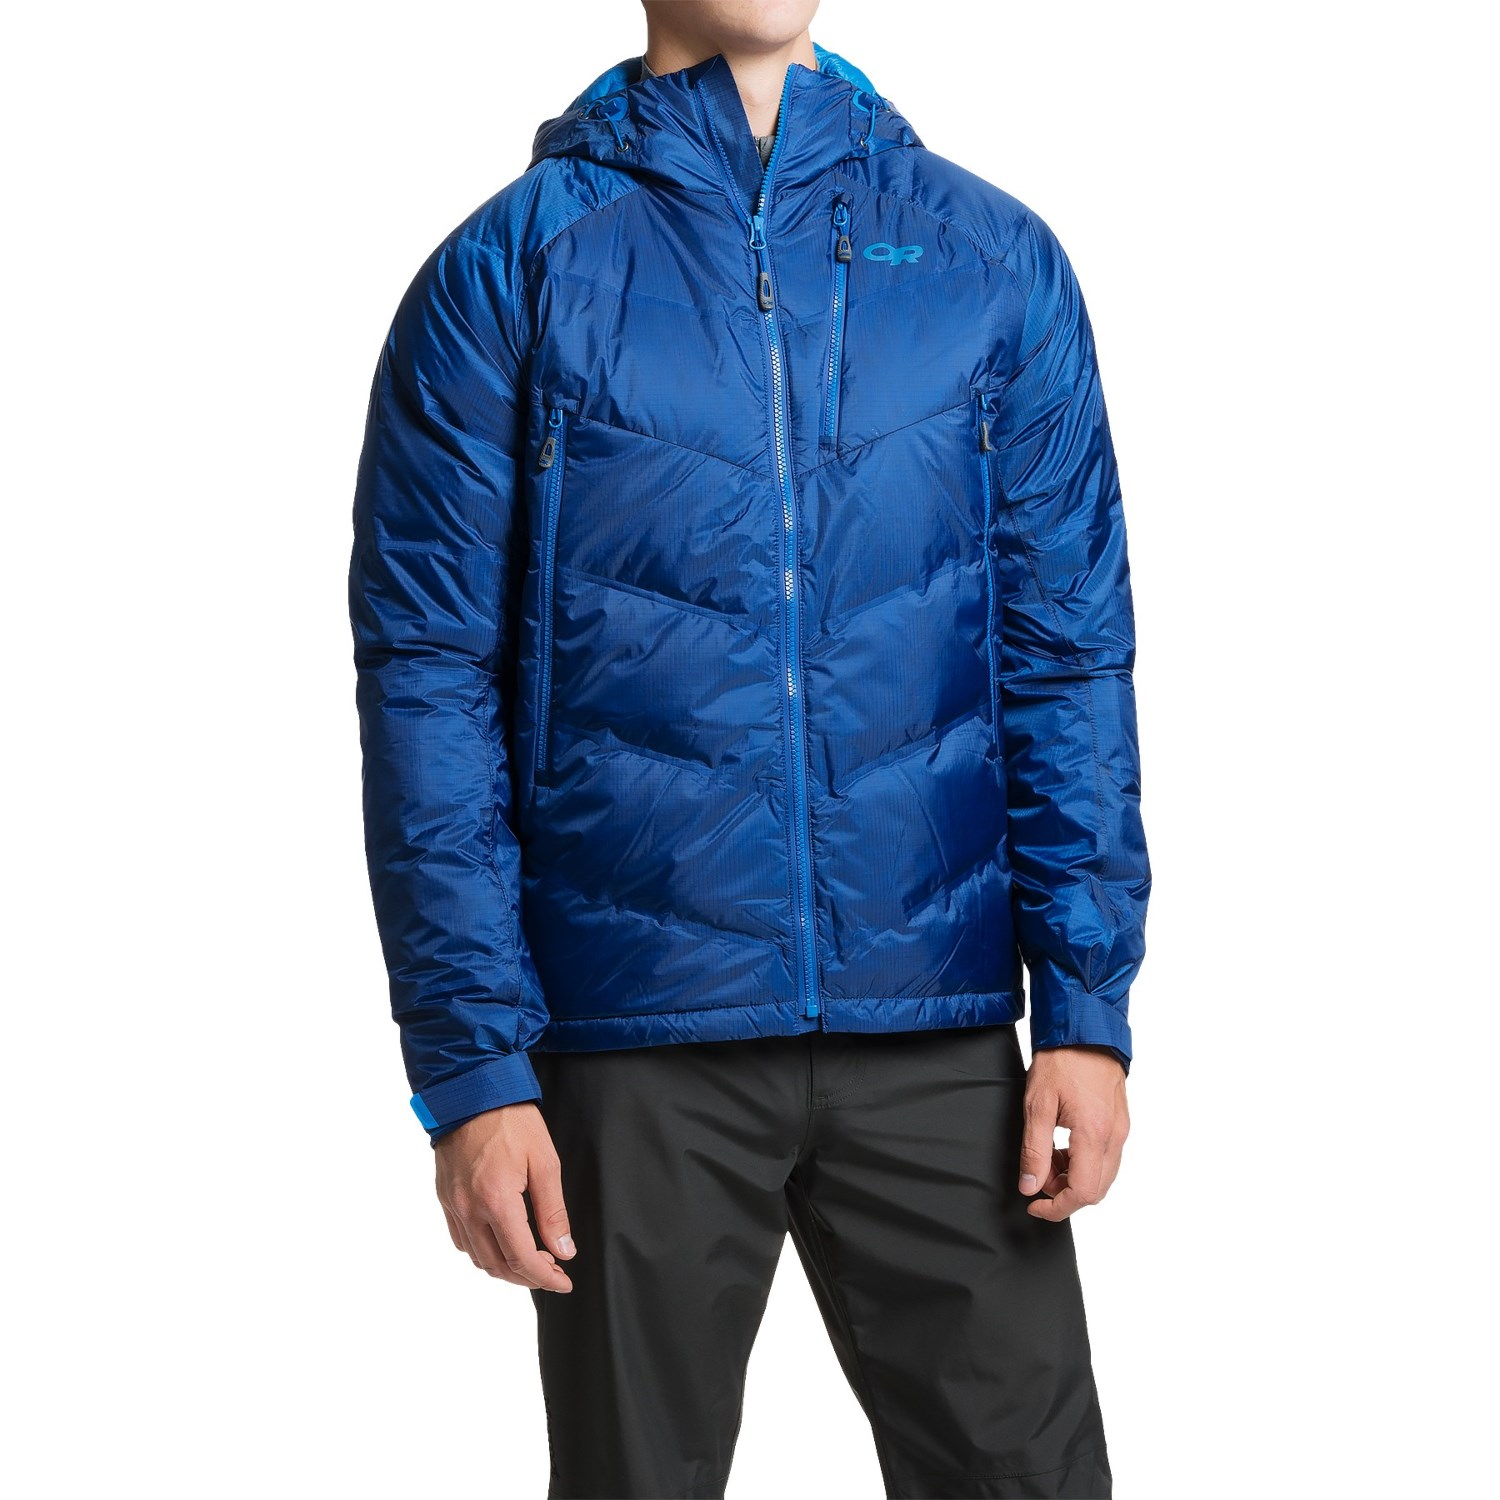 Outdoor Research Floodlight Down Jacket (For Men) 8627J - Save 85%